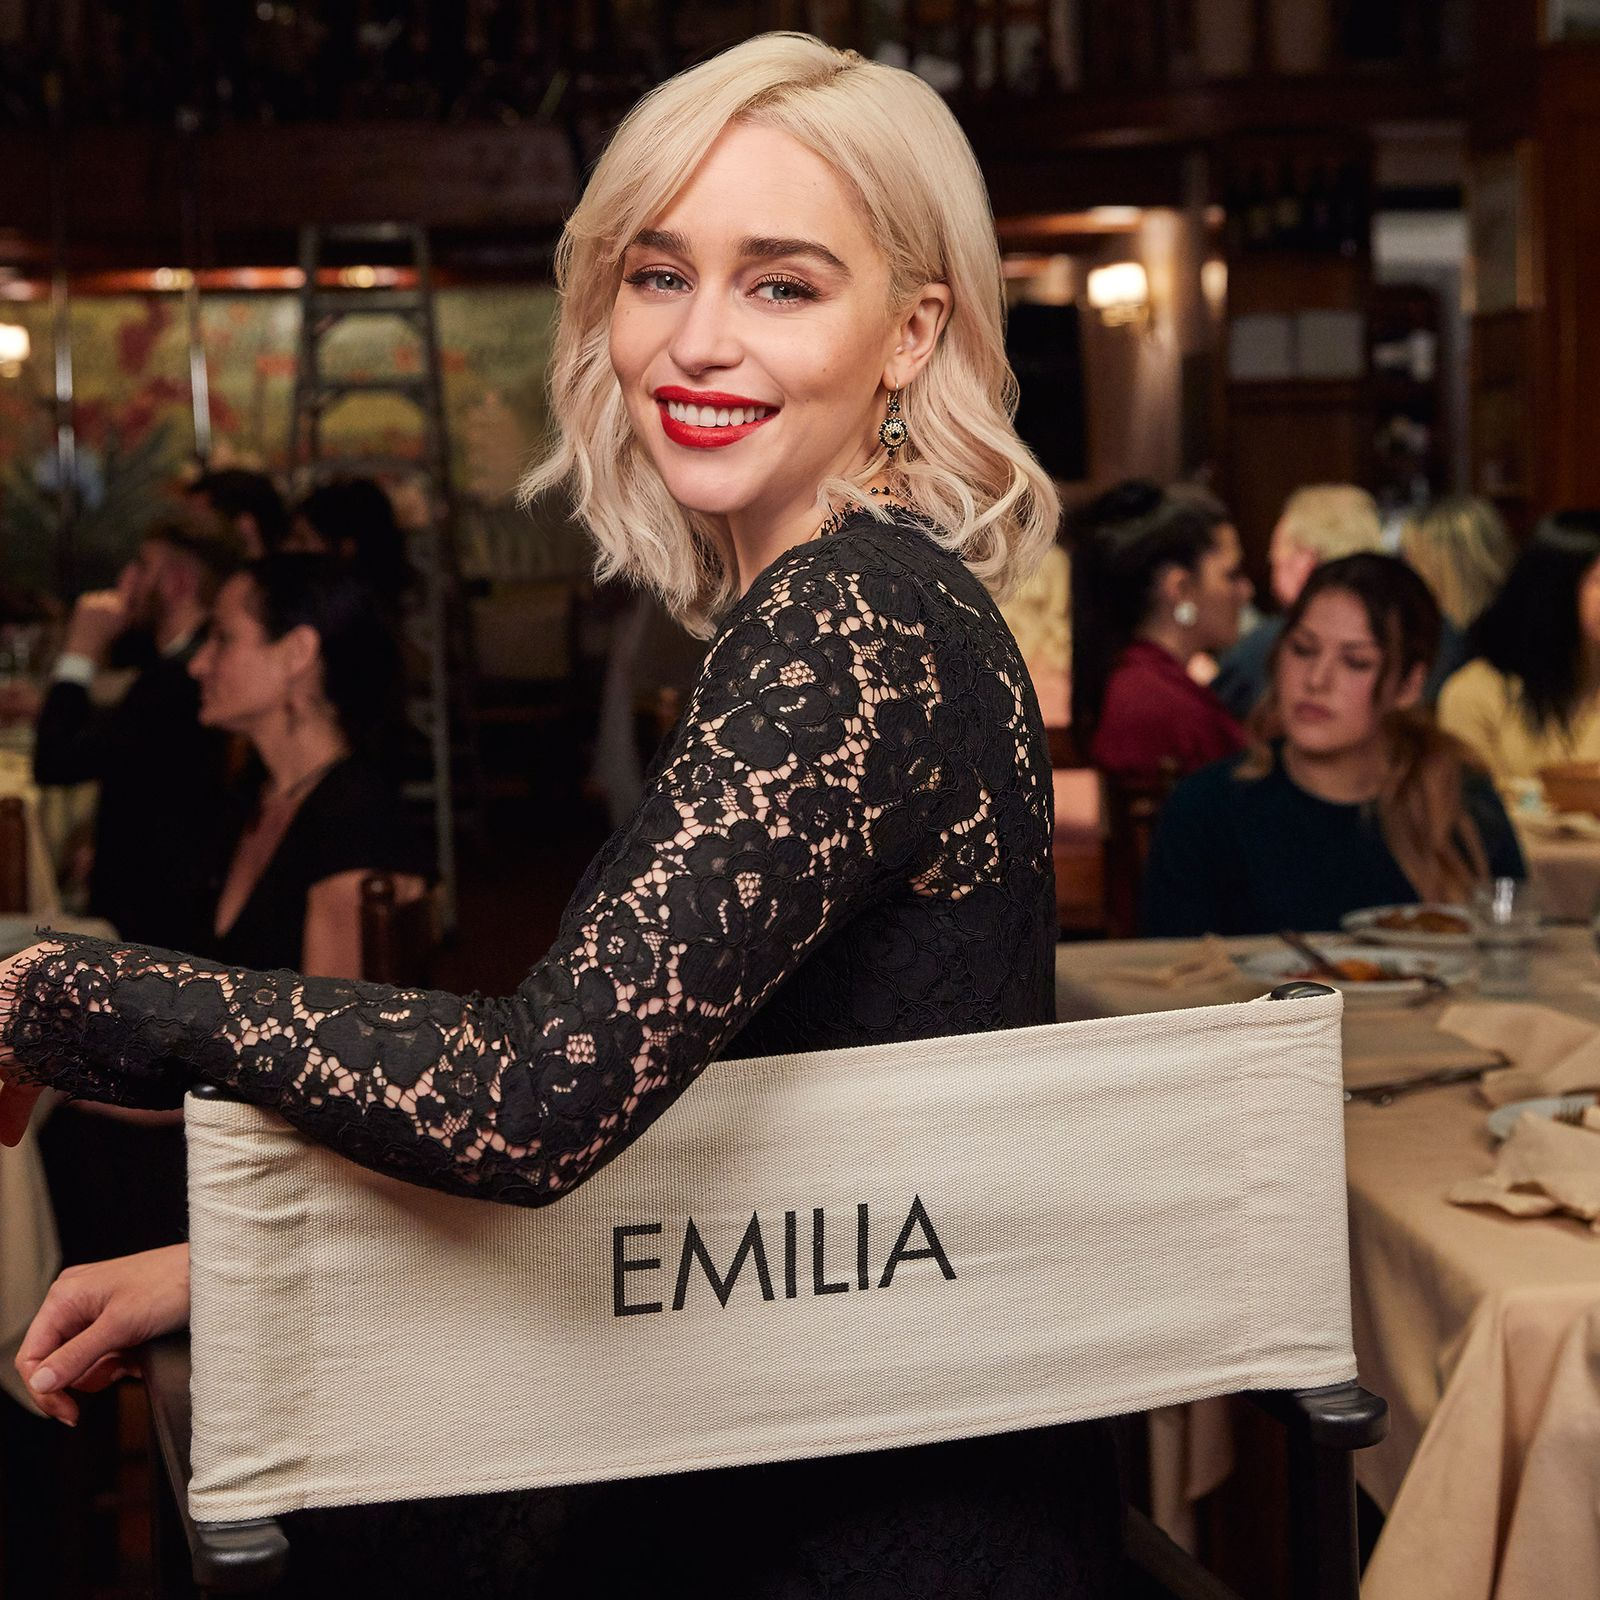 Exclusive: Emilia Clarke on finding self-confidence (and the perfect red lipstick)